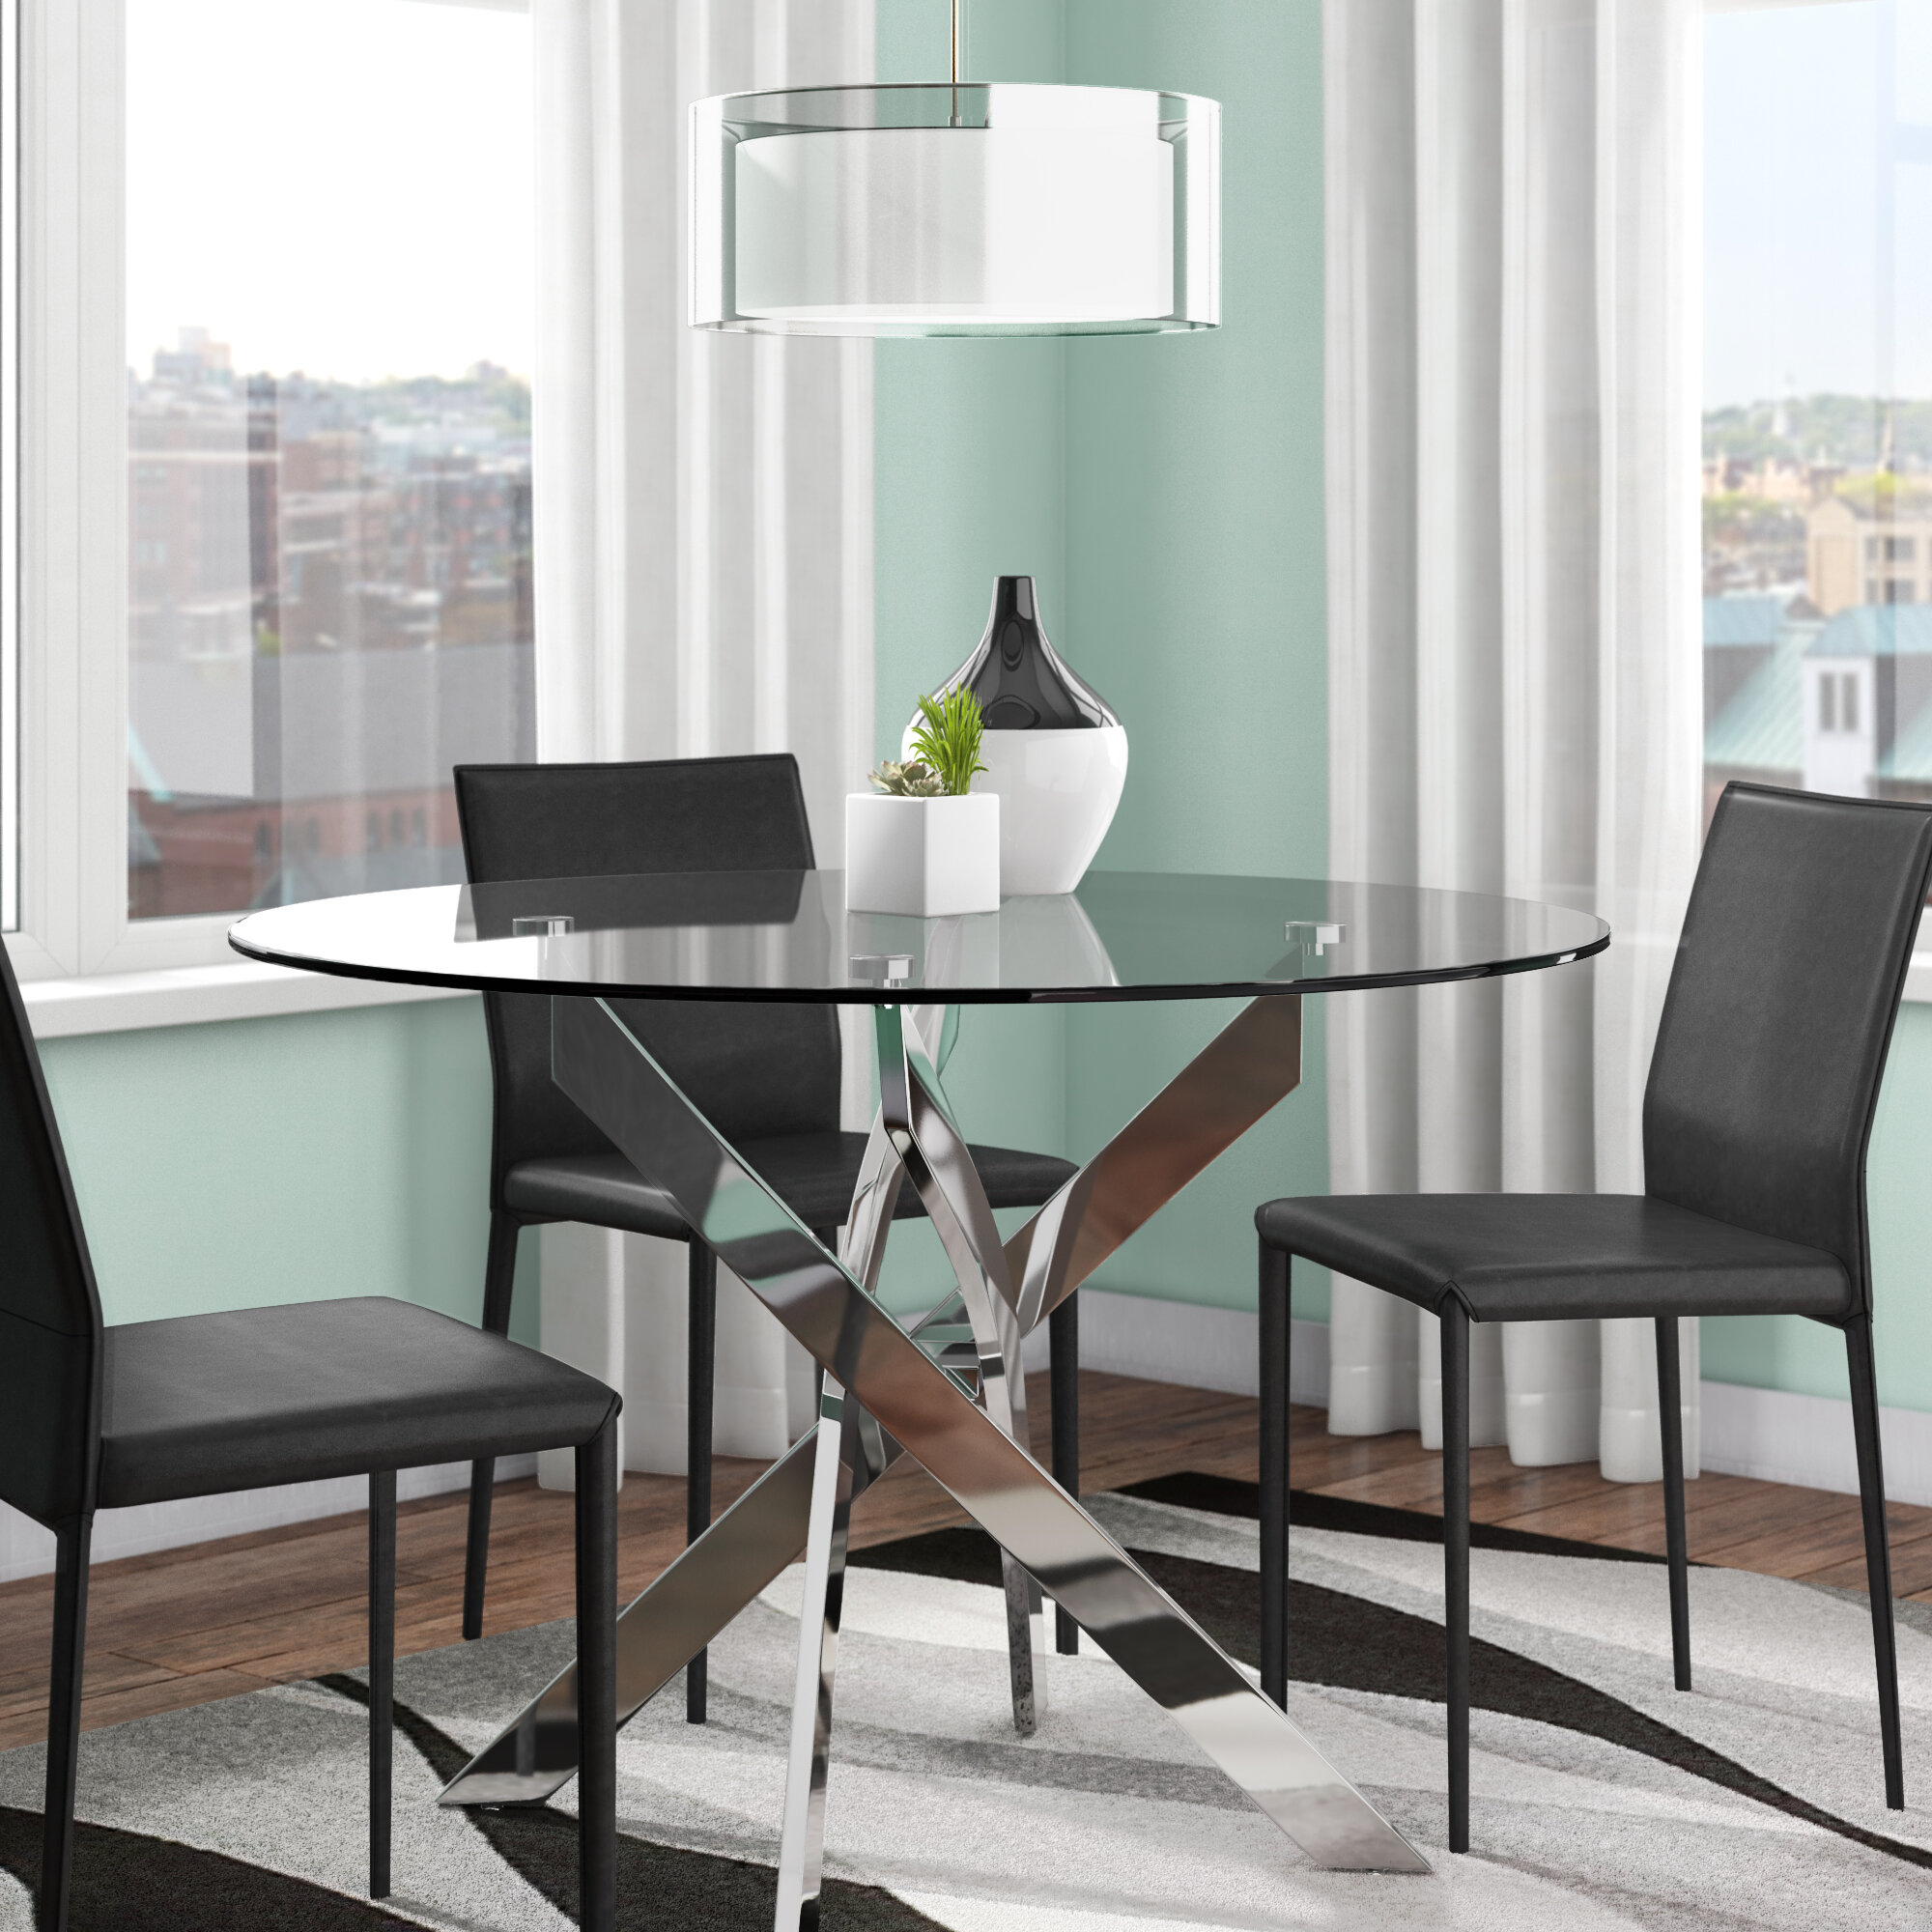 Picture of: Glass Modern Contemporary Kitchen Dining Tables You Ll Love In 2020 Wayfair